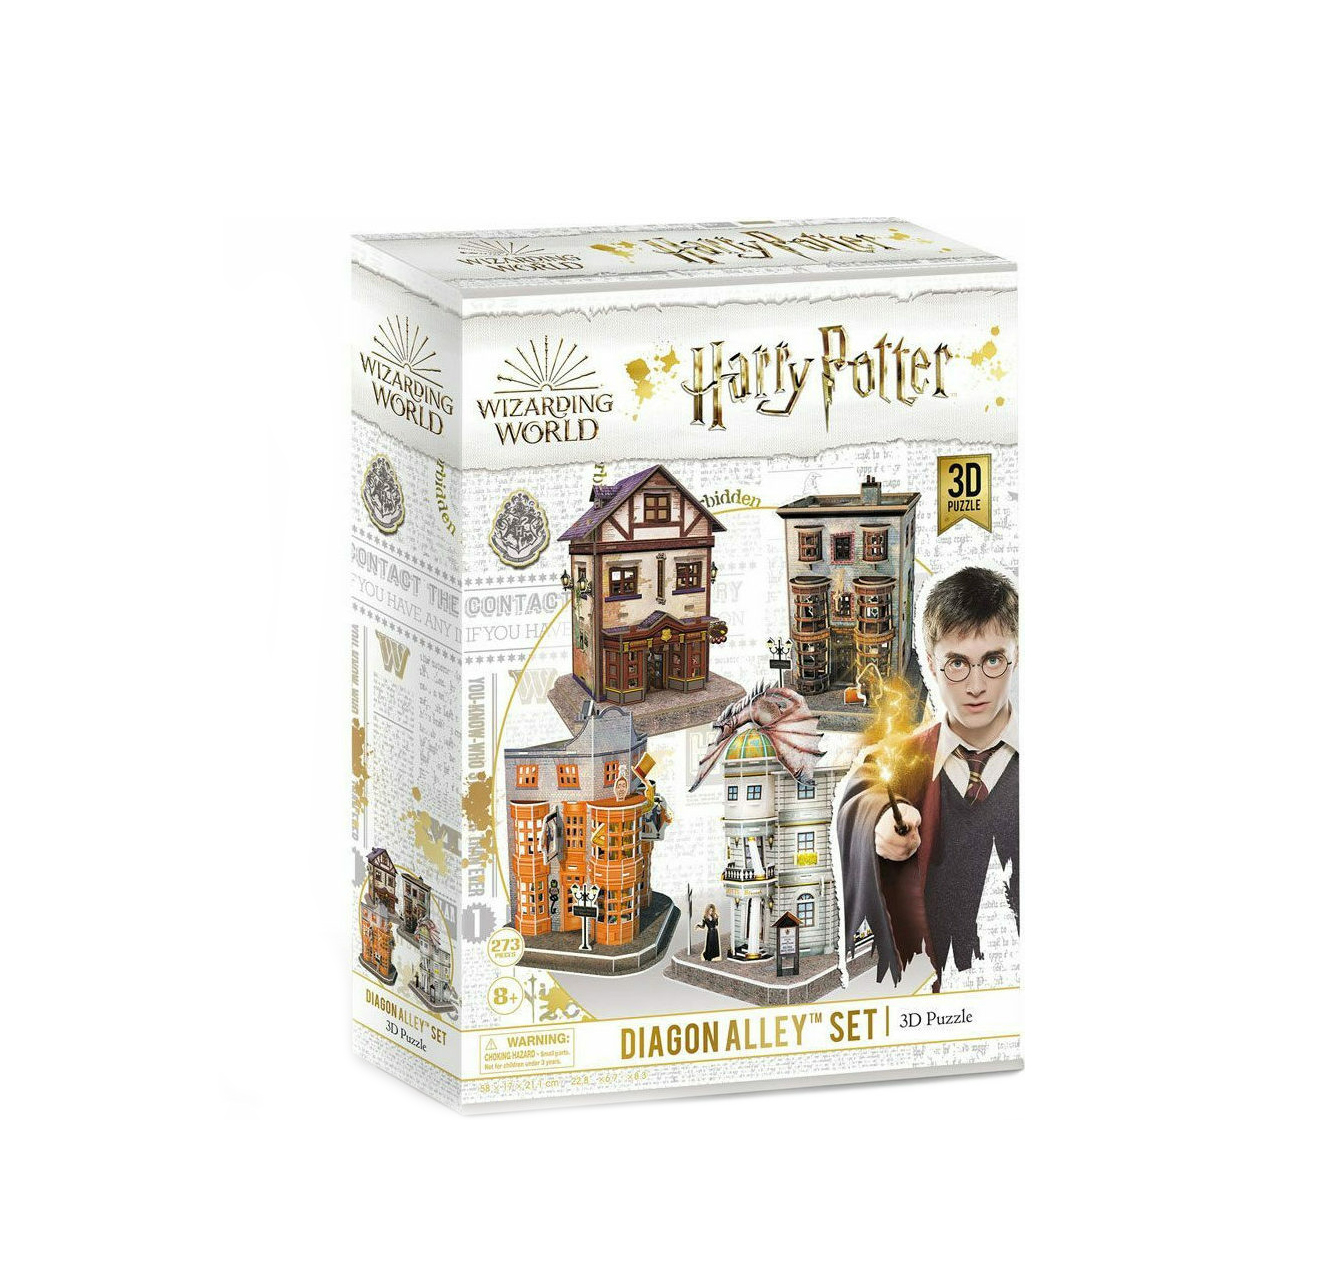 Harry Potter Diagon Alley Set 3D 273pcs DS1009h 420005